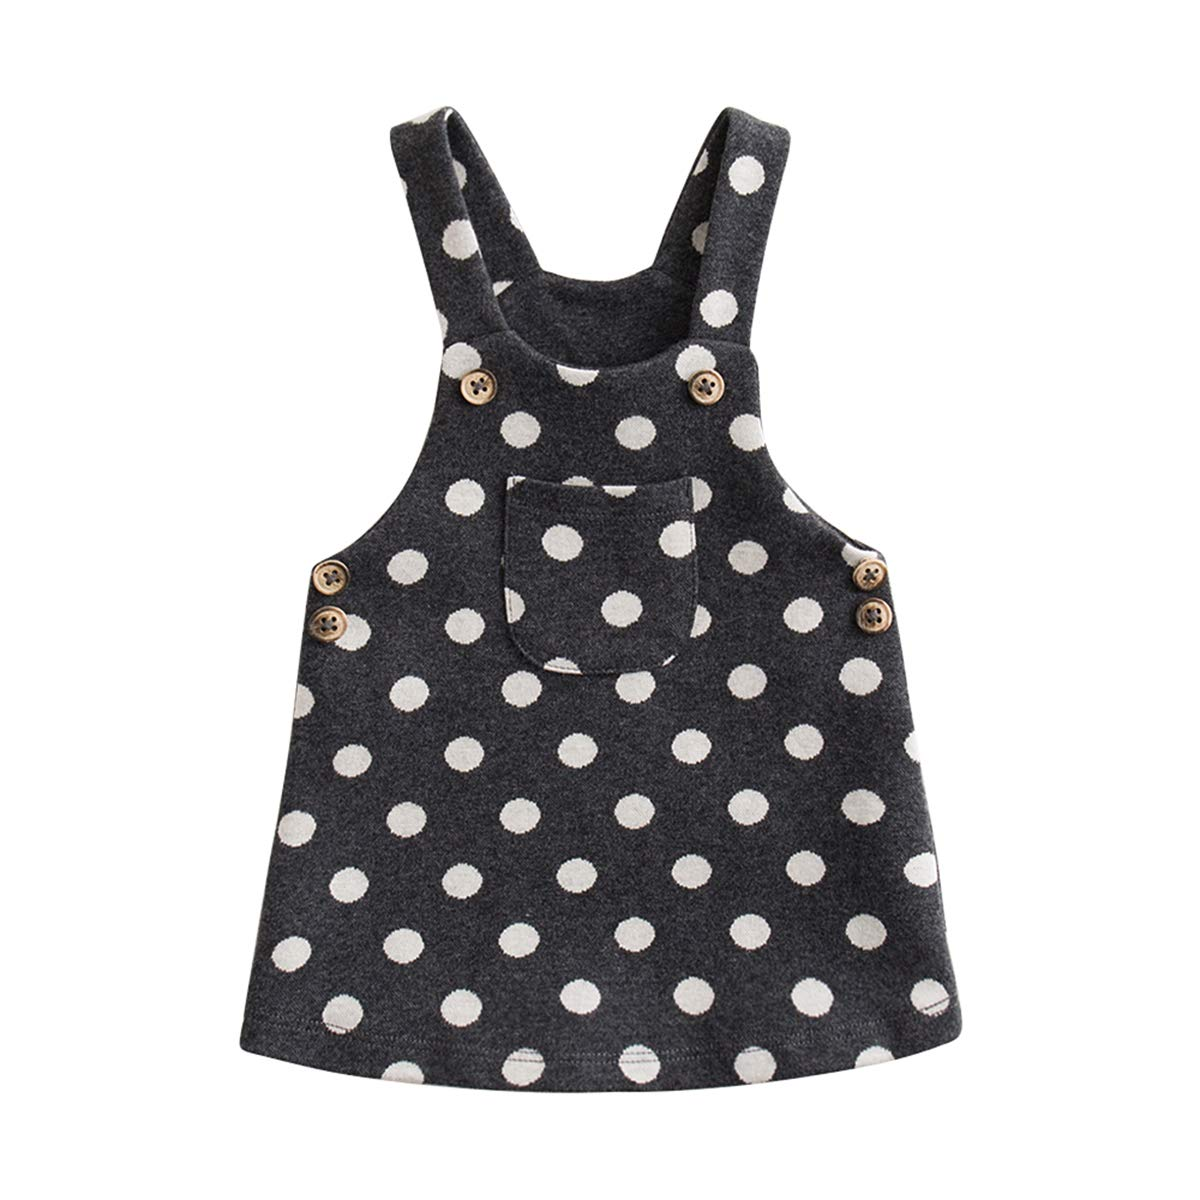 marc janie Little Girls Autumn Polka Dots Overalls Baby Girls Knitted Jacquard Dress Polka Dots 3T (90 cm)